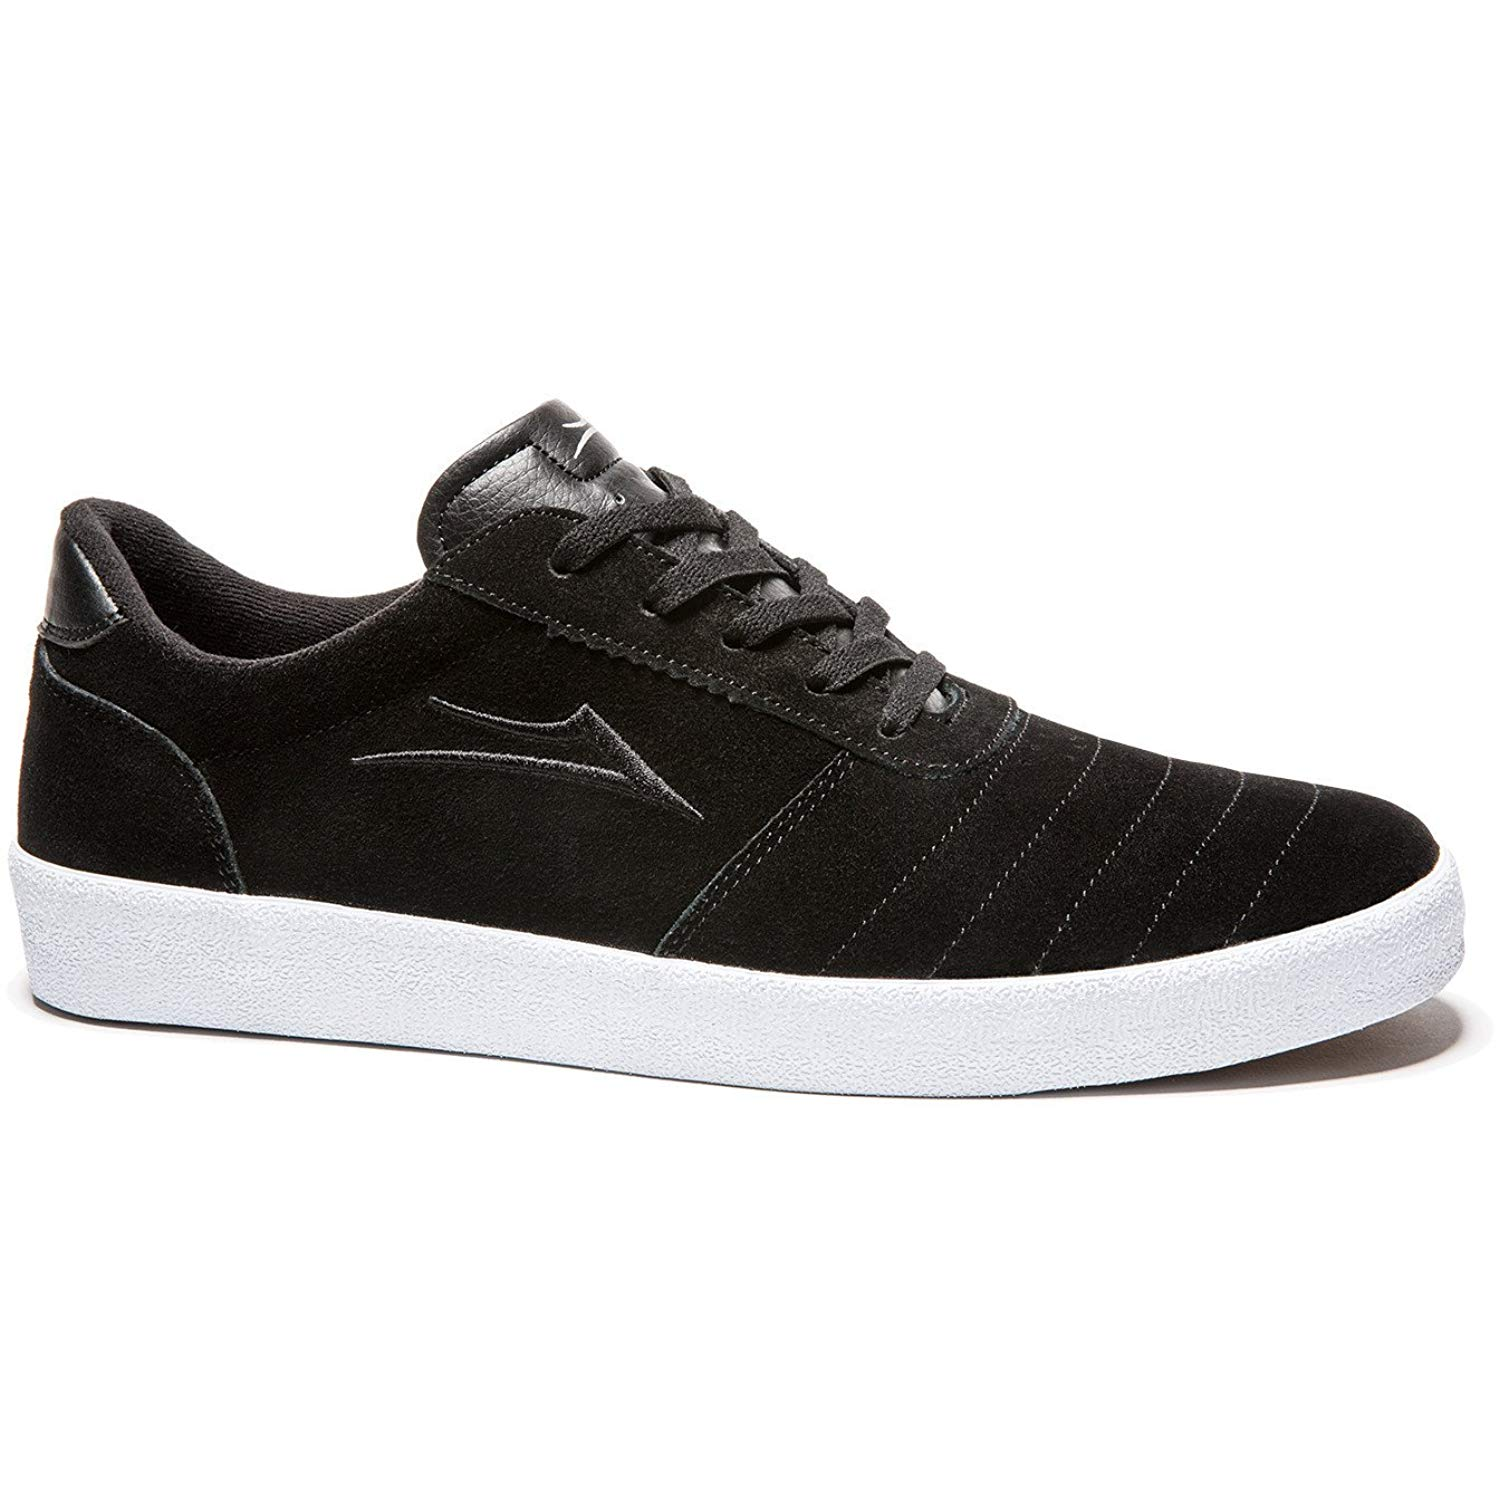 Lakai Salford (Black/White) Skateboard Shoes